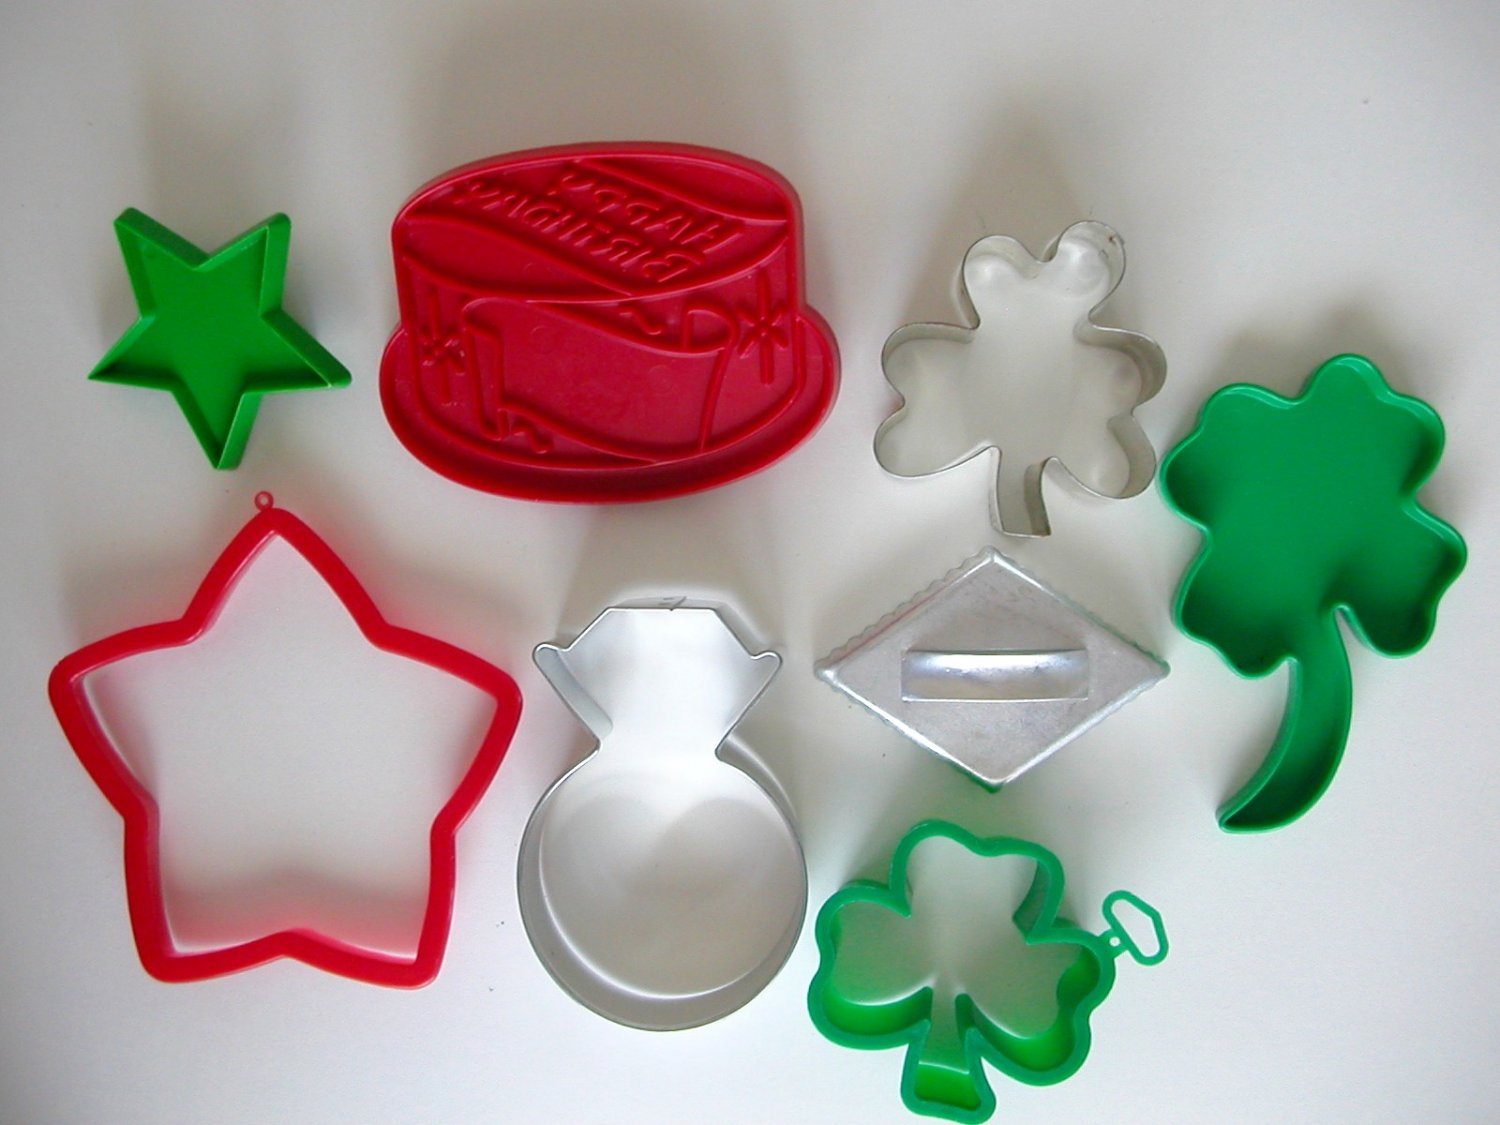 Cookie cutter clover star birthday cake diamond ring lot of 8